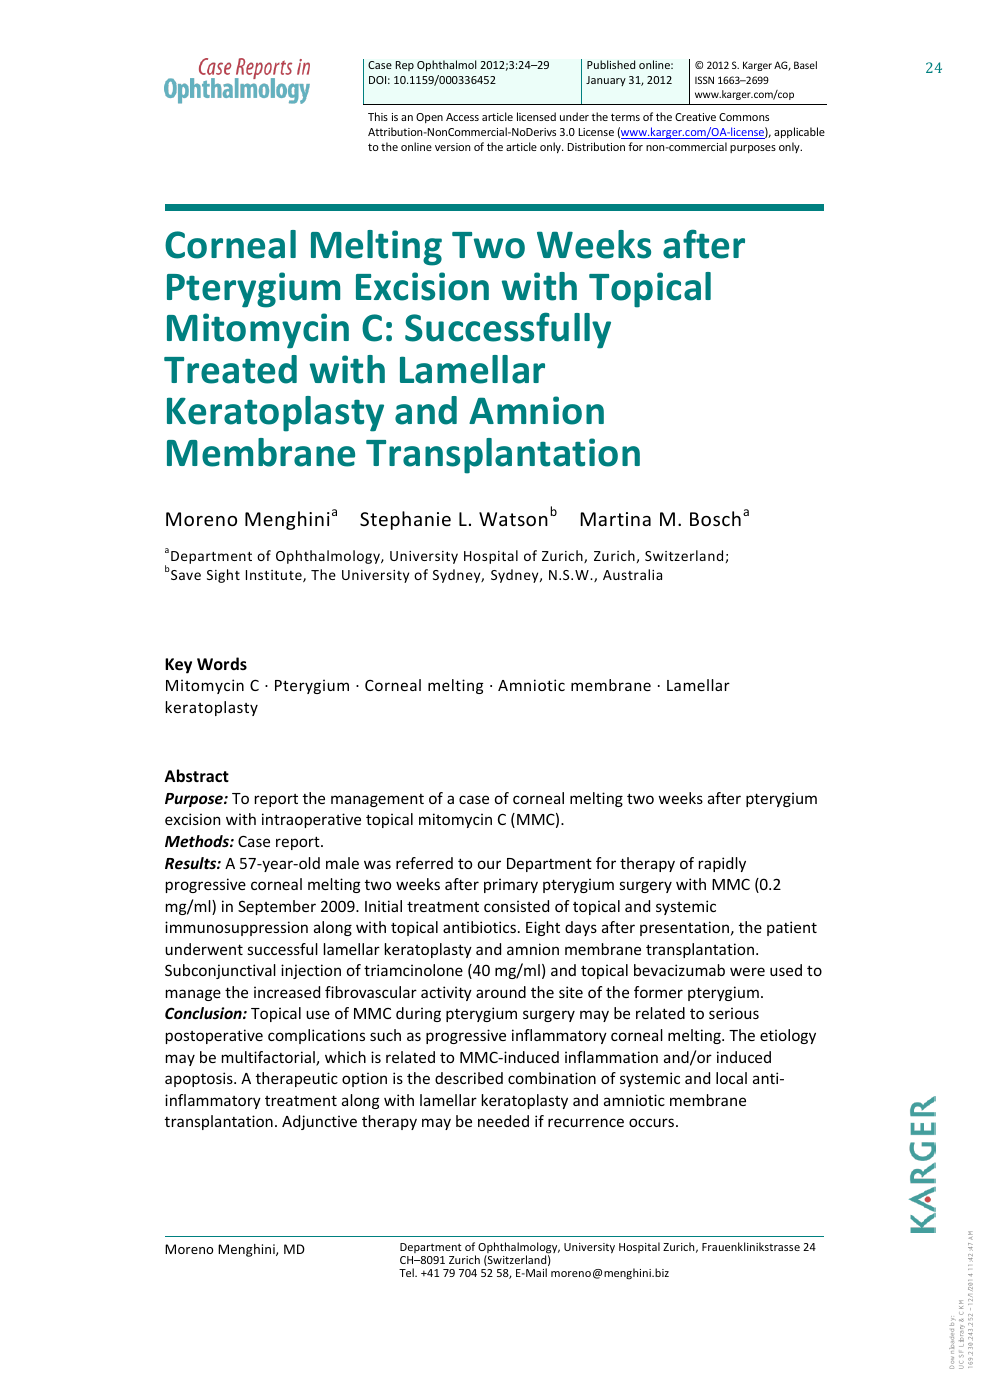 Corneal Melting Two Weeks after Pterygium Excision with Topical